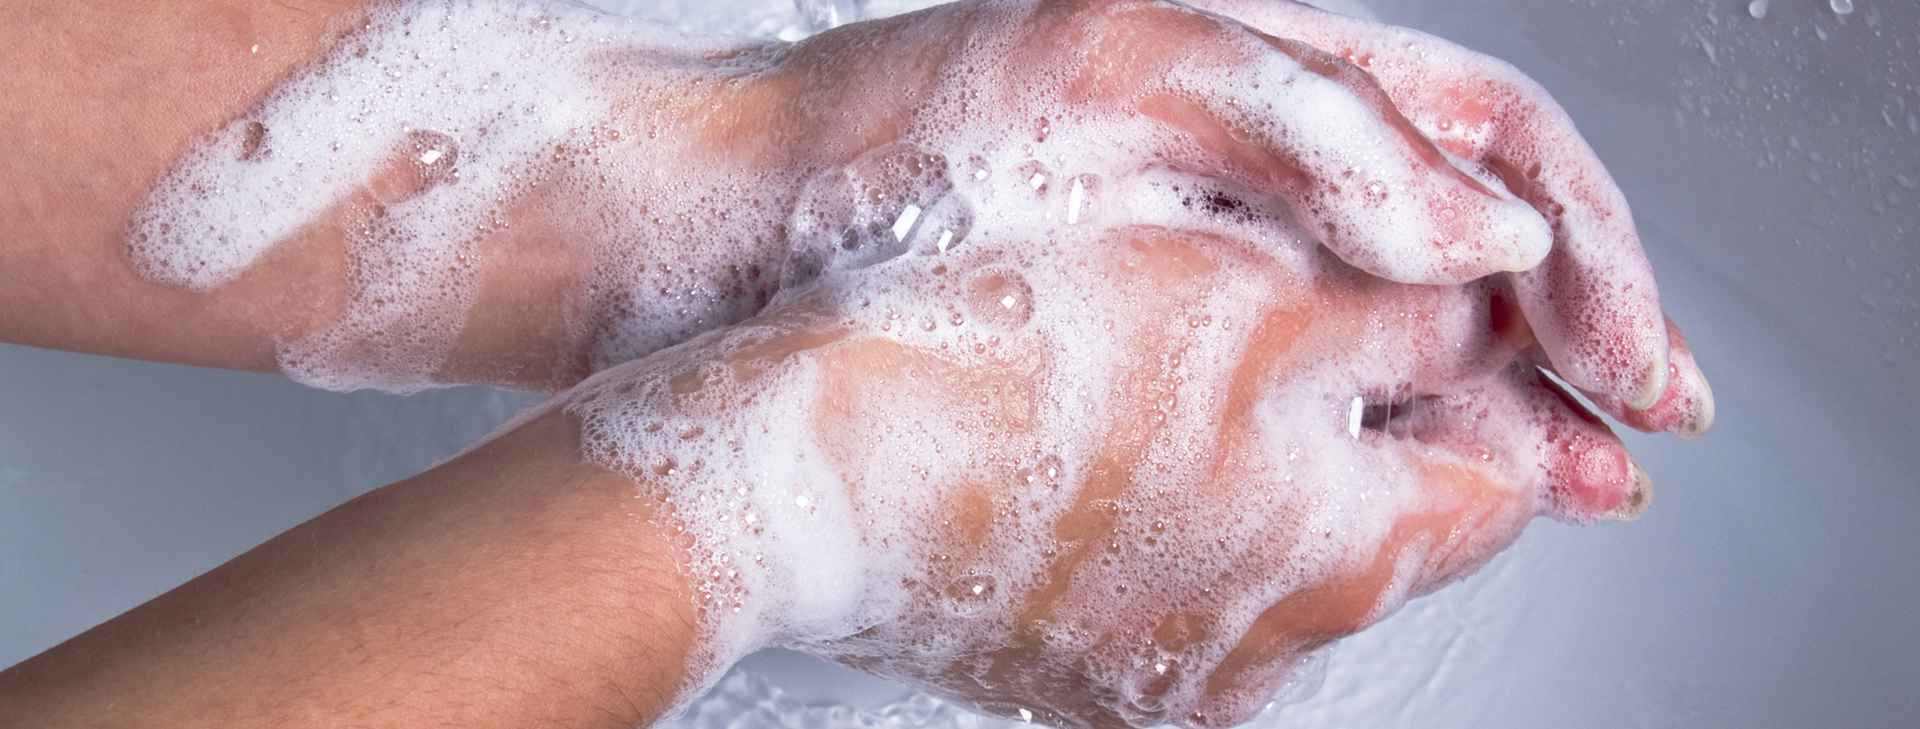 Hand washing cropped